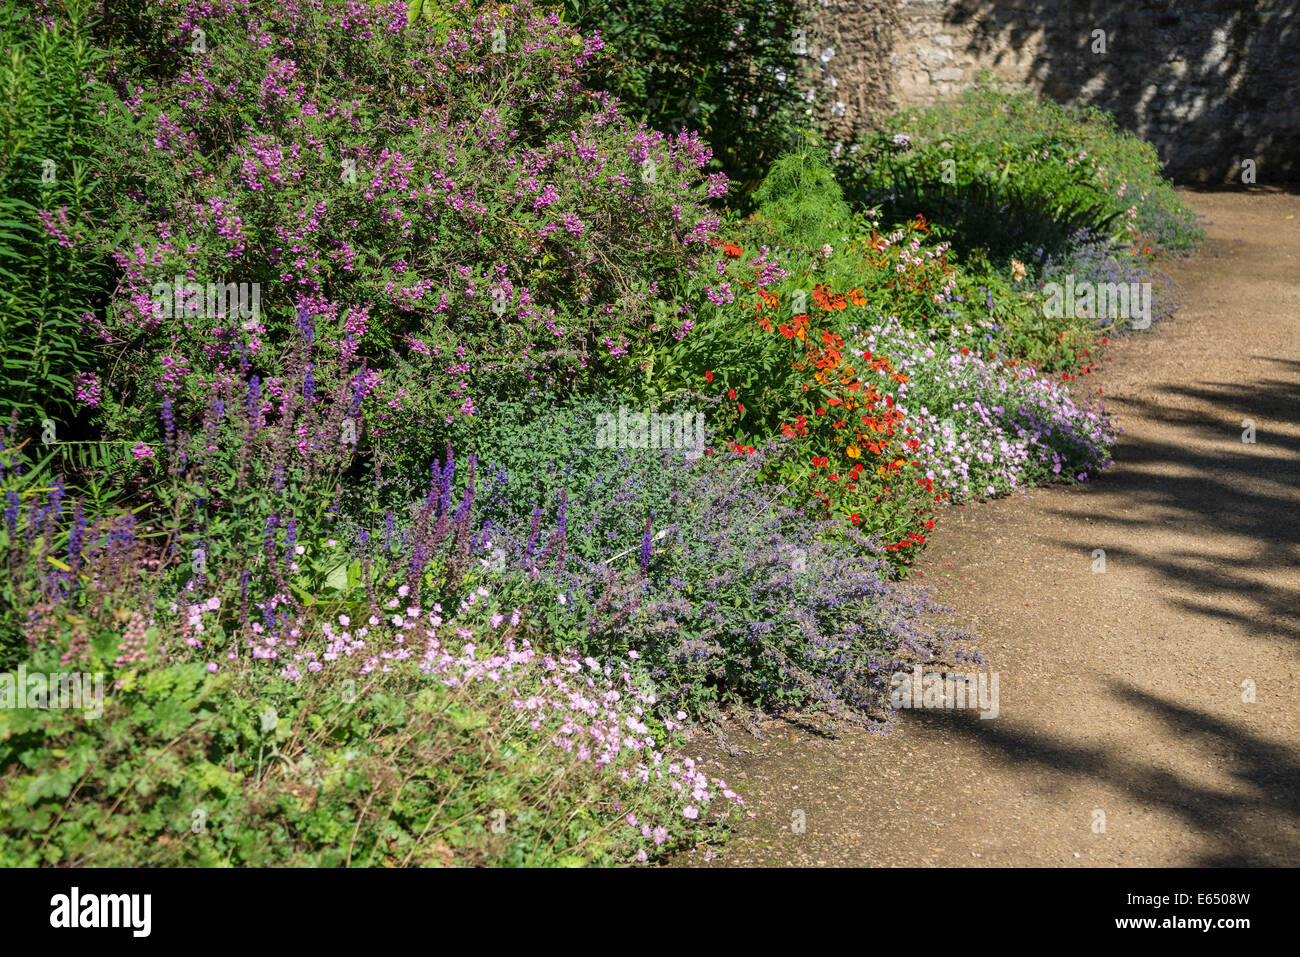 Summer herbaceous border, New College Gardens, Oxford, England, UK - Stock Image